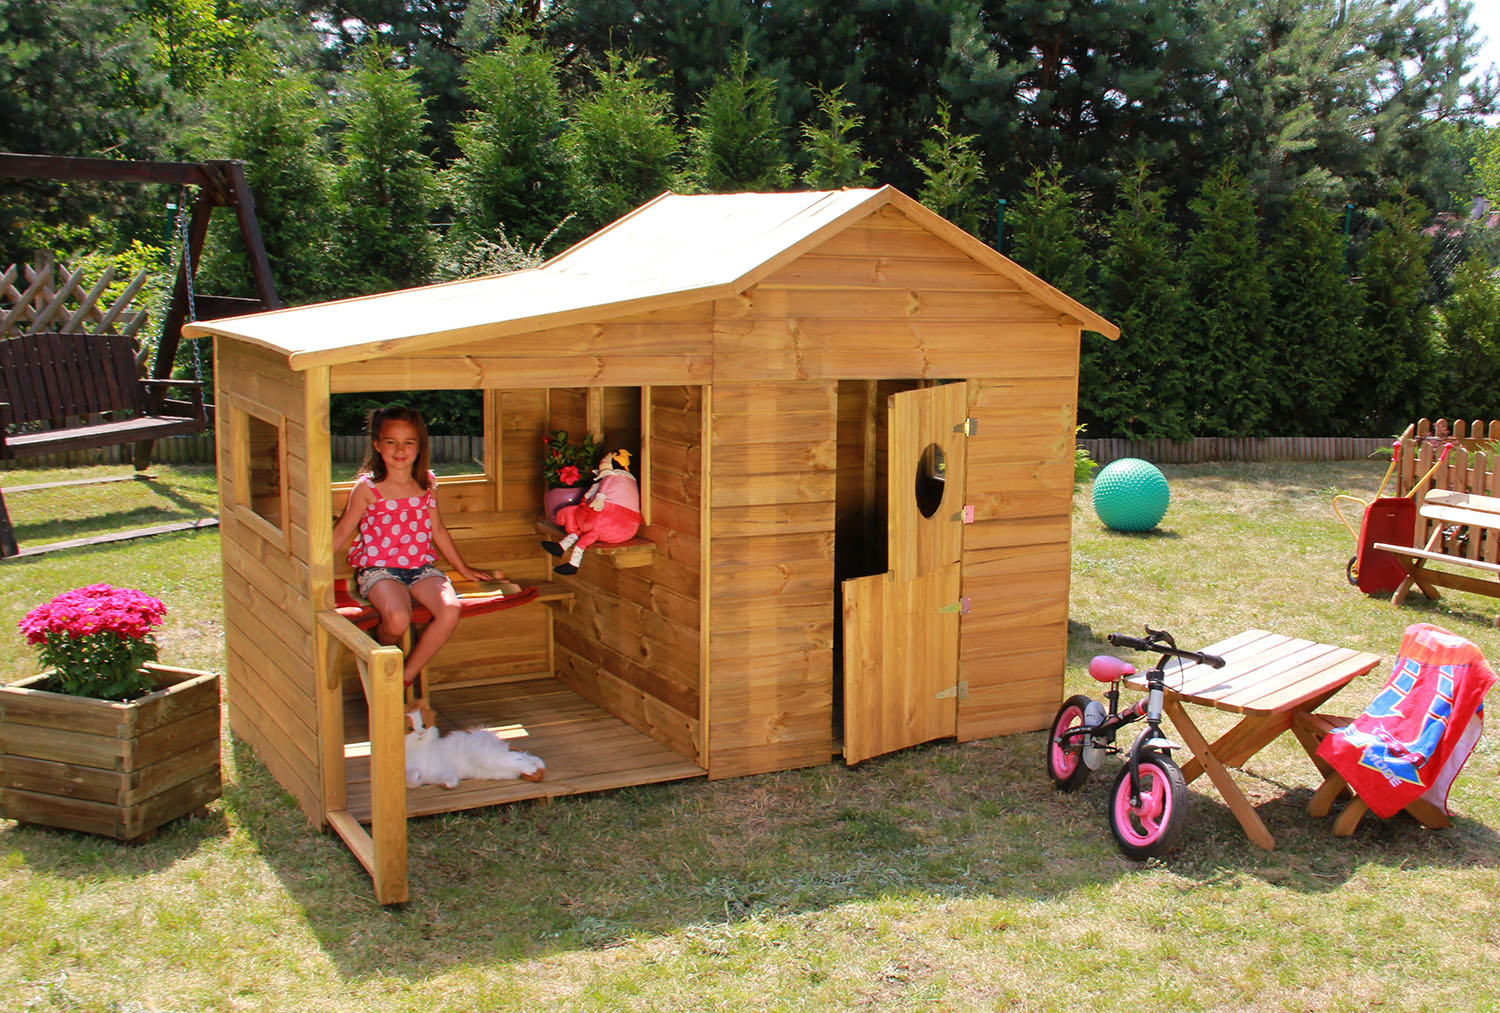 baumotte spielhaus holz kinderspielhaus heidi spielhaus holz kinderspielhaus heidi. Black Bedroom Furniture Sets. Home Design Ideas